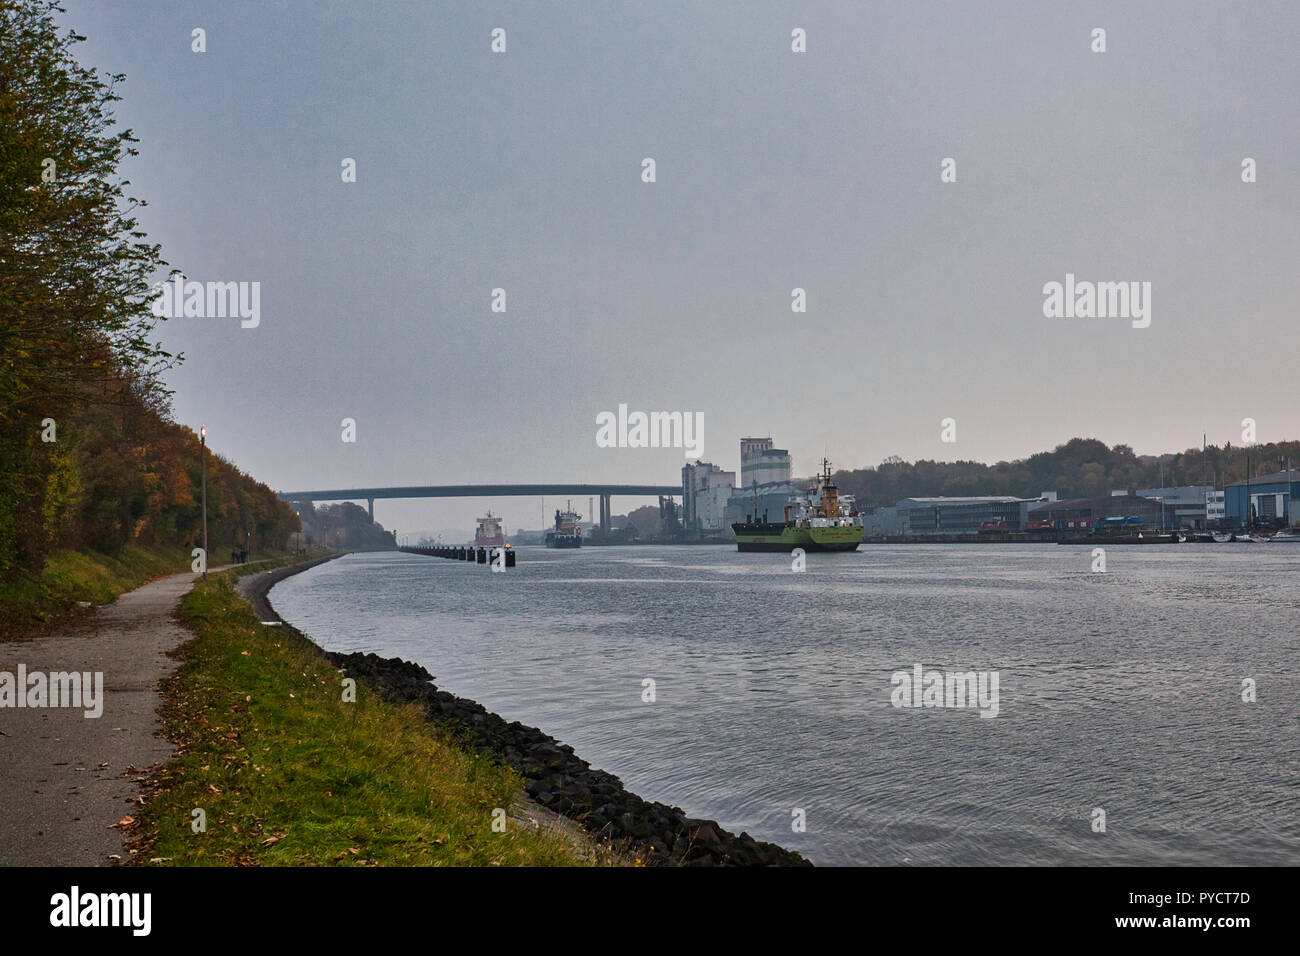 Nord-Ostsee-Kanal, Kiel. Deutschland Germany.  Several ships on the canal heading towards the sluice gates just past the Olympia bridge Kiel-Holtenau. - Stock Image